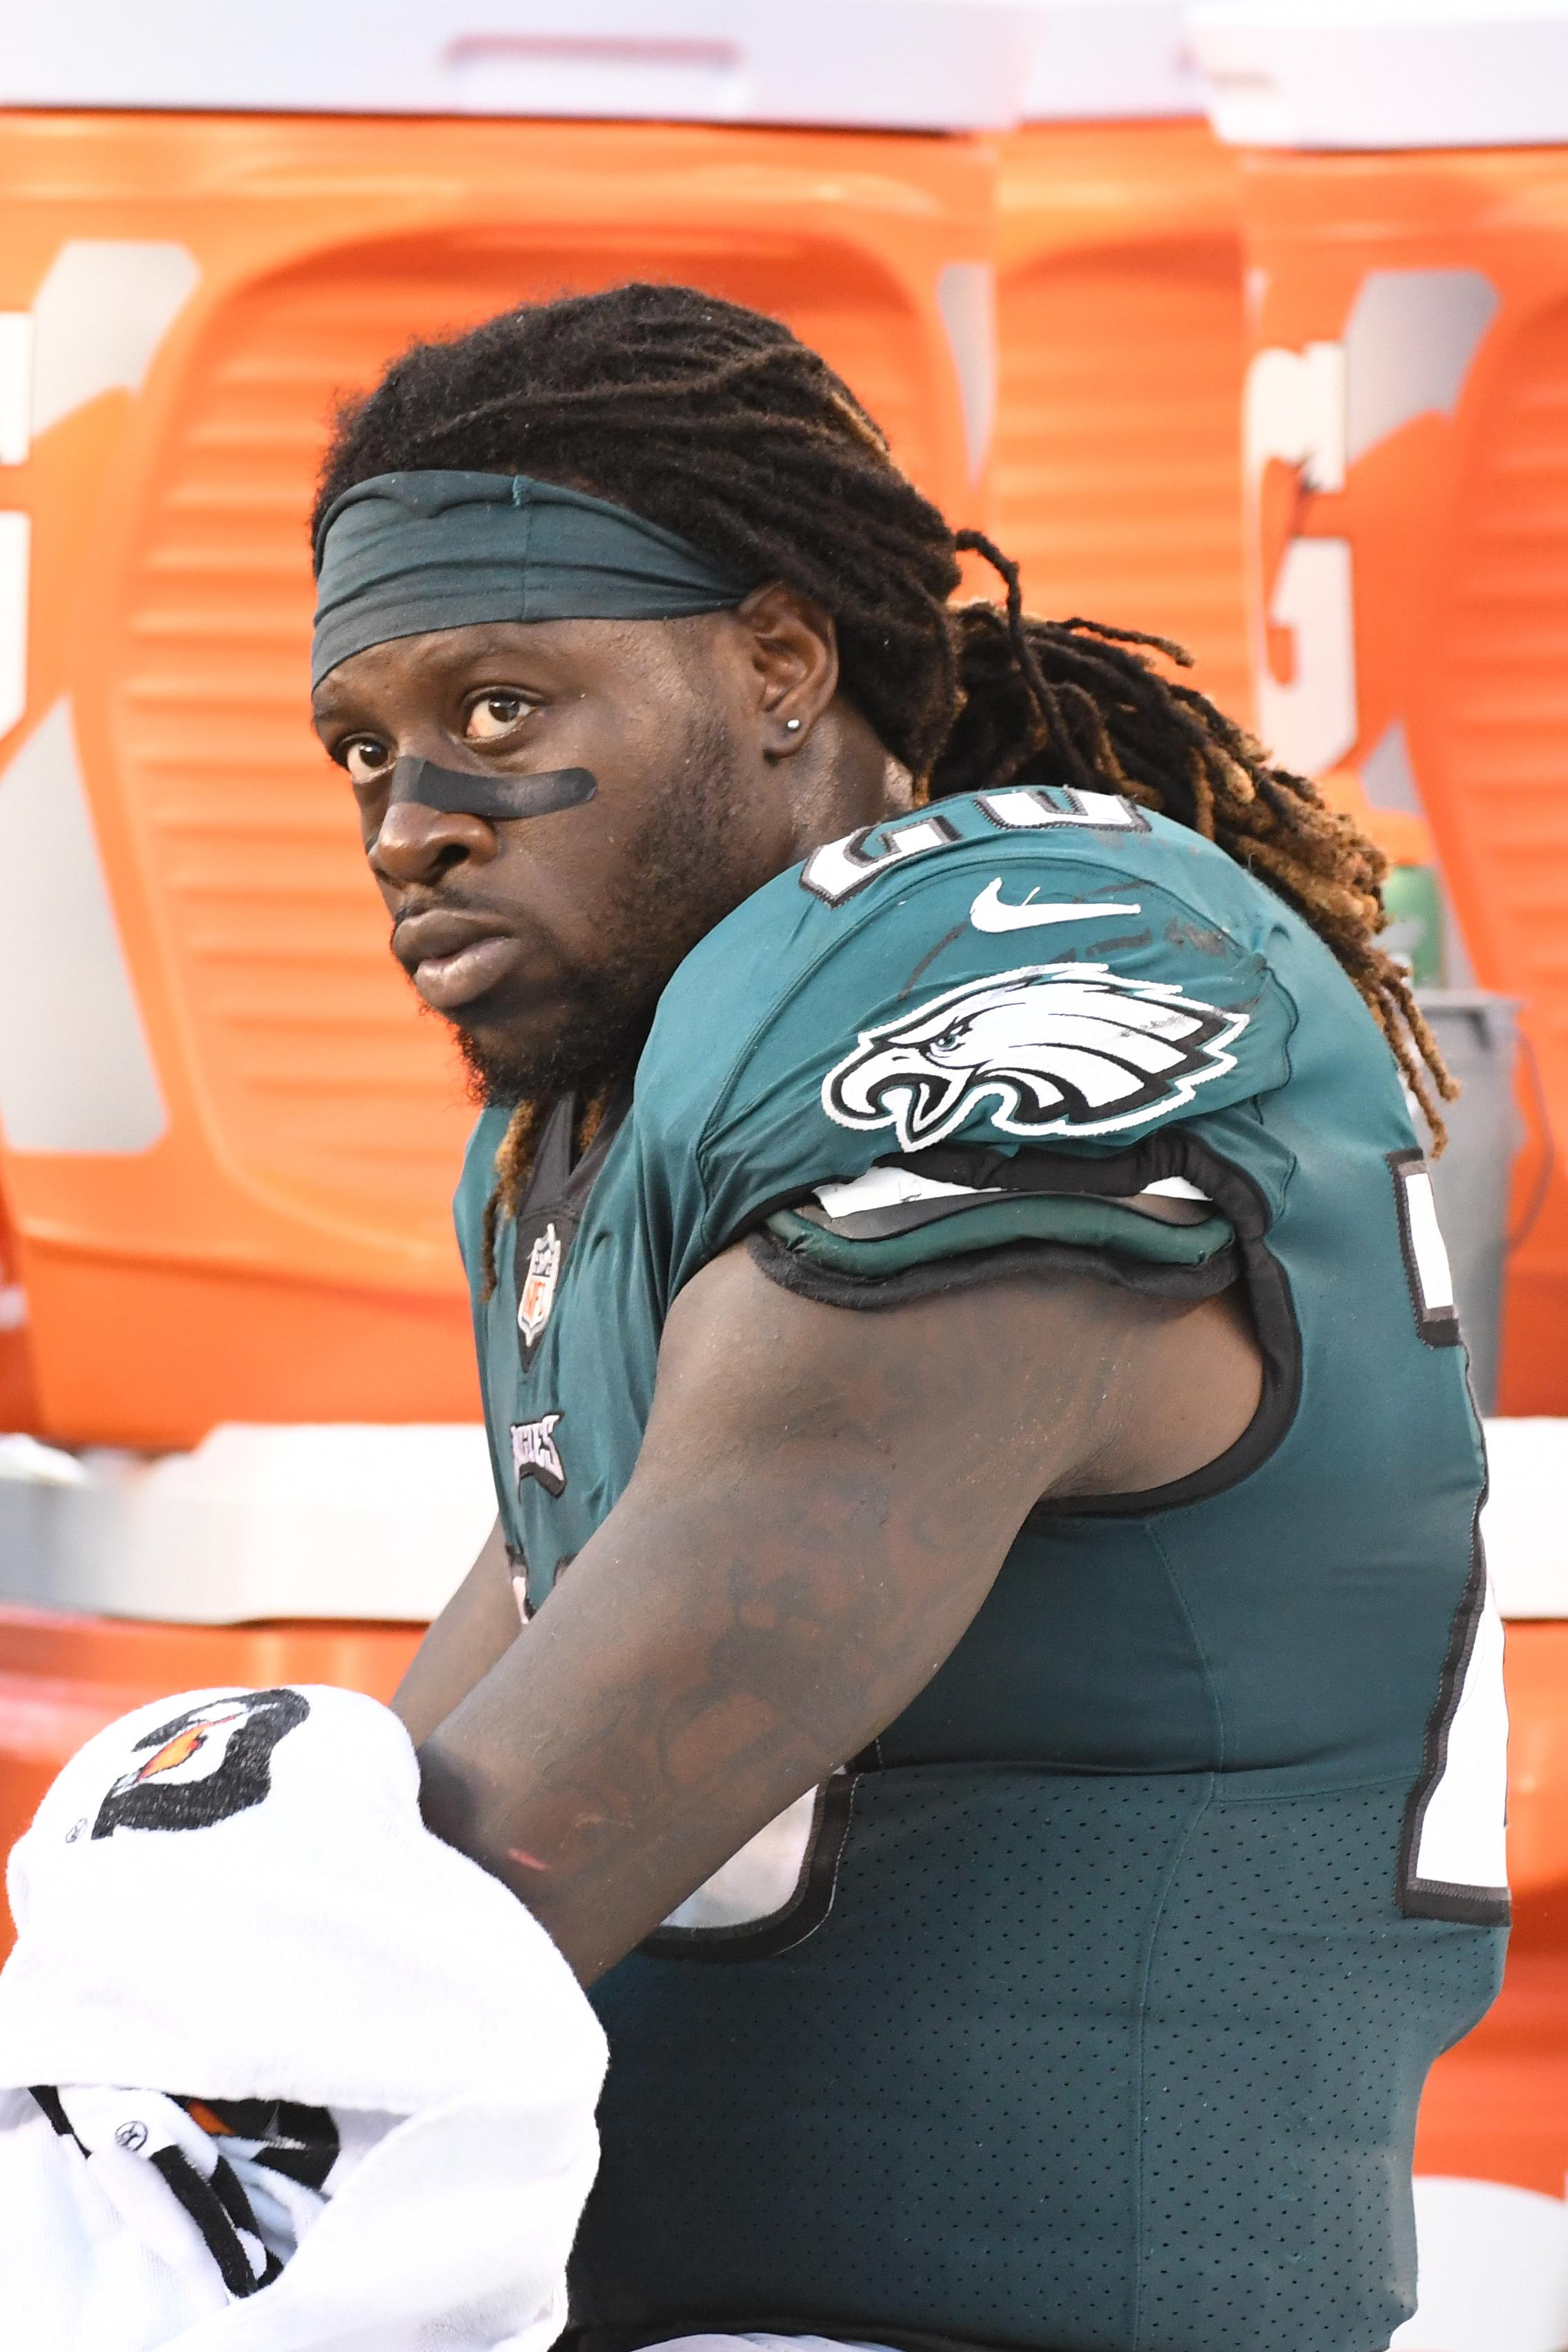 Ajayi is one of the most exciting talents in the NFL but faces missing the season with a cruciate ligament injury